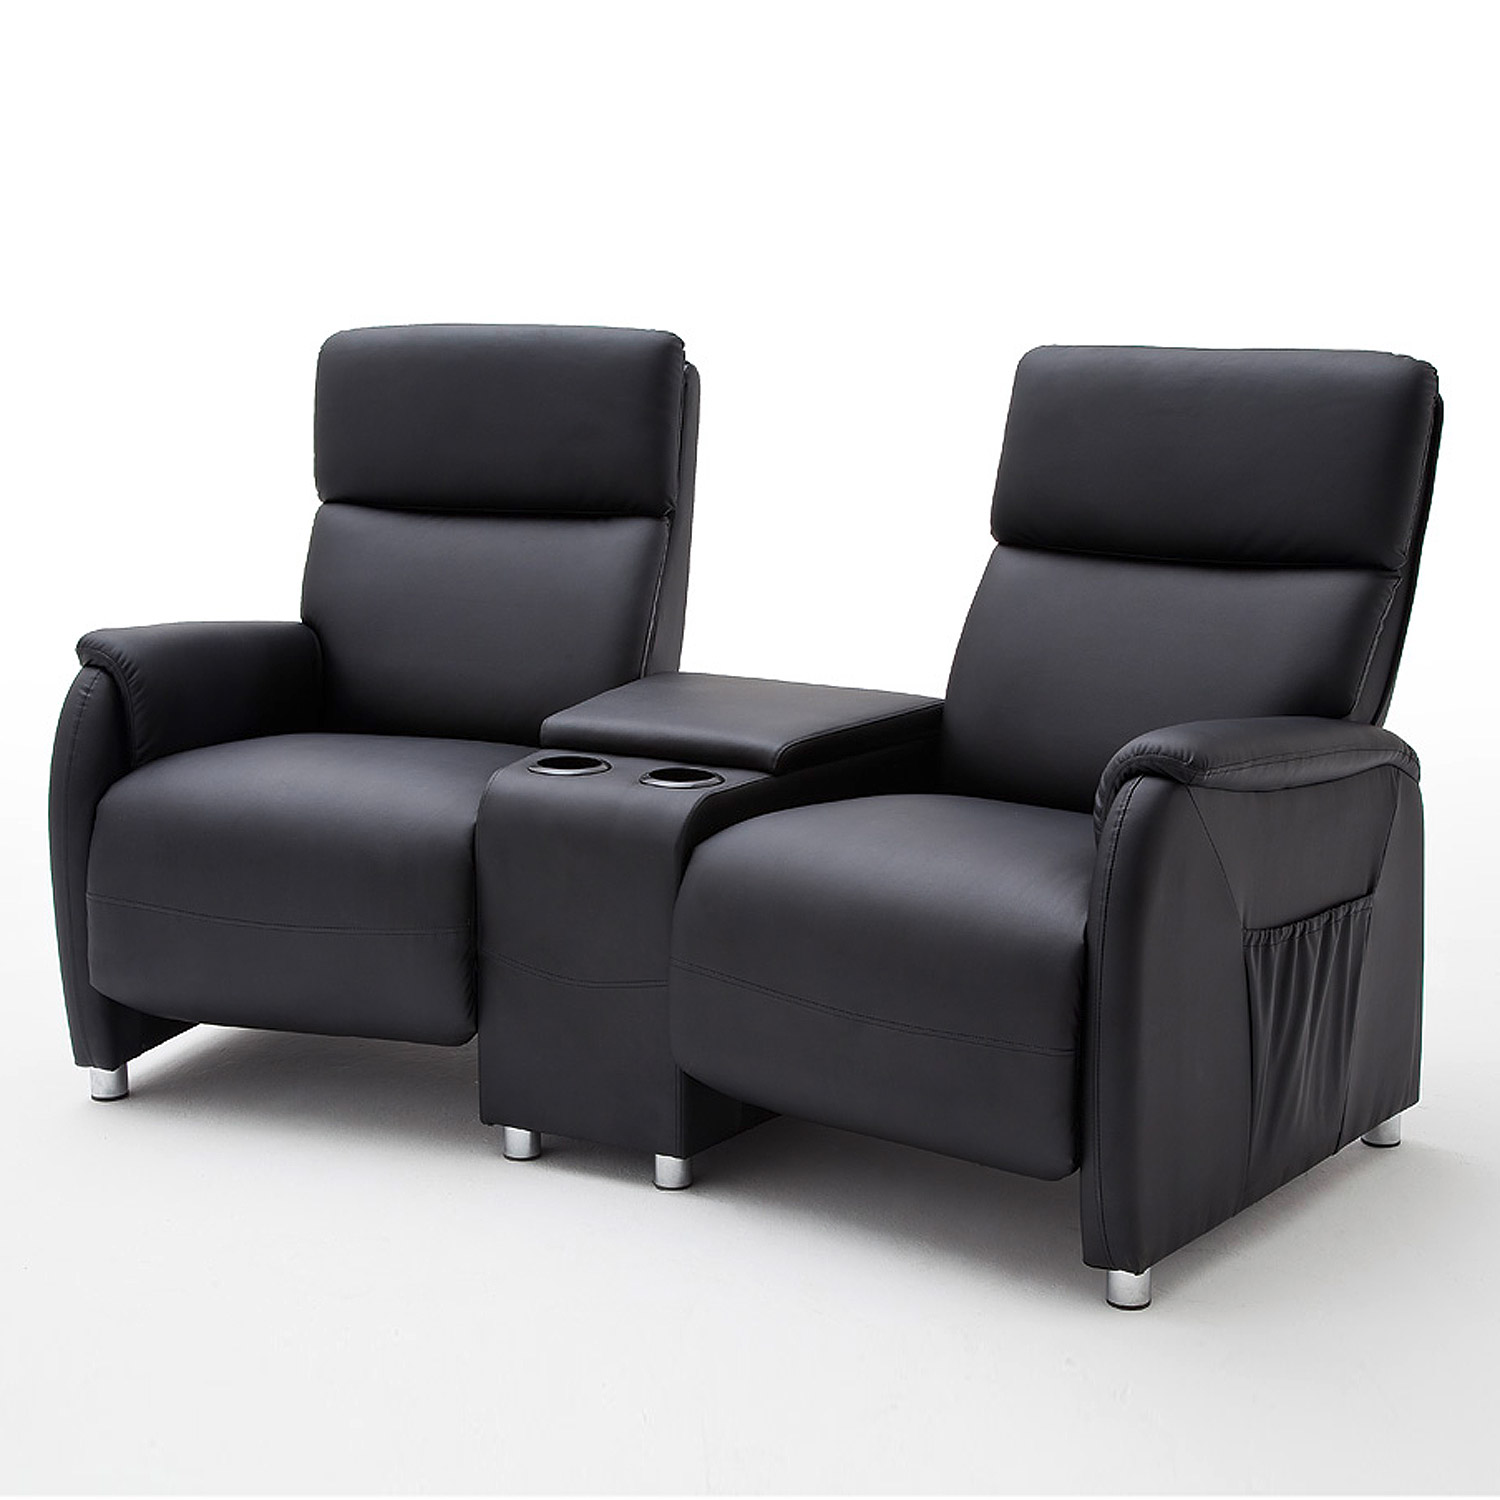 media sofa sectionals kino 2er sessel dani cinema sofa lederlook schwarz mit purple sectional. Black Bedroom Furniture Sets. Home Design Ideas